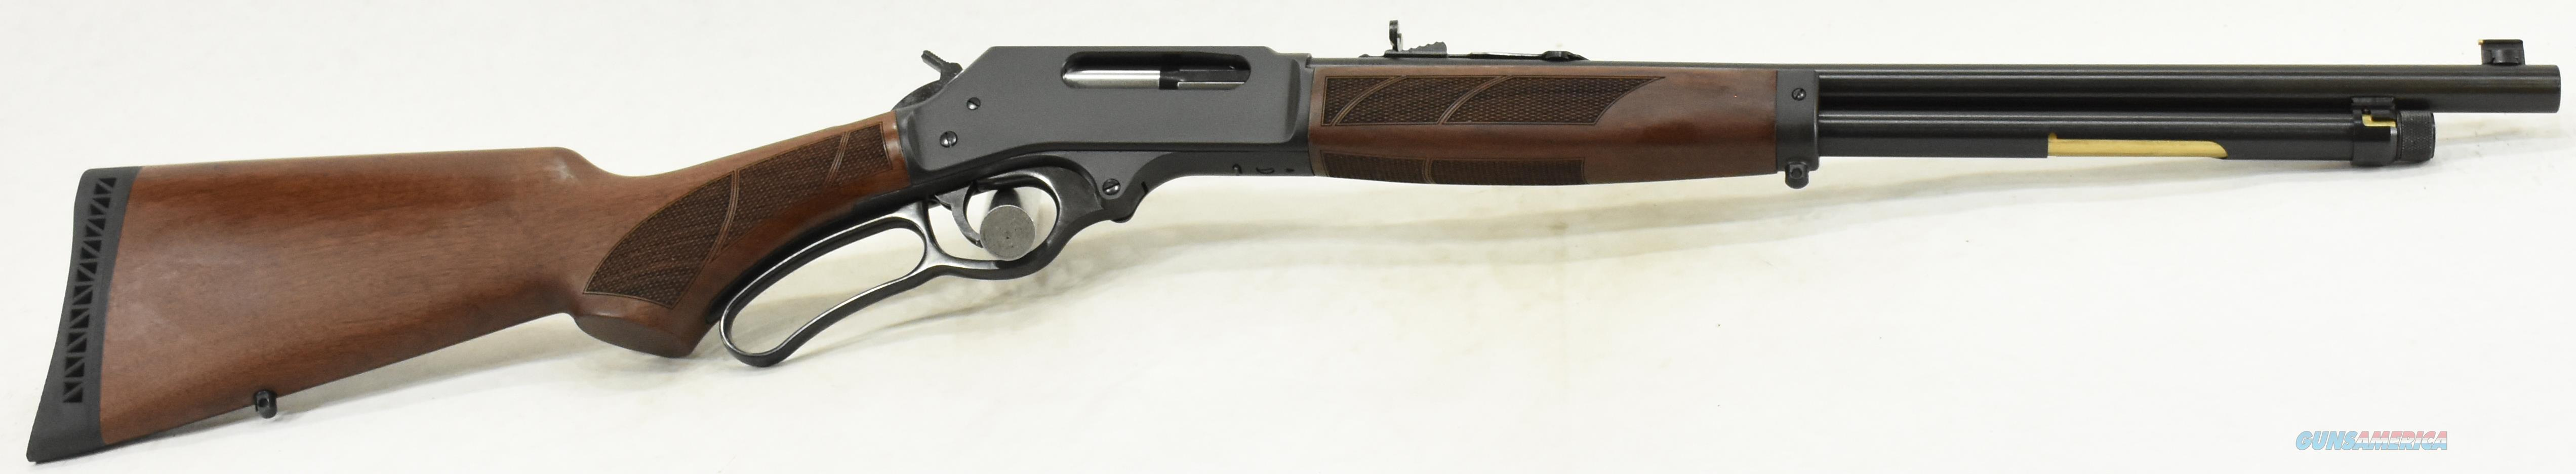 Lever Action 410Ga Fixed Cylinder 20In  H018-410R  Guns > Rifles > Henry Rifles - Replica